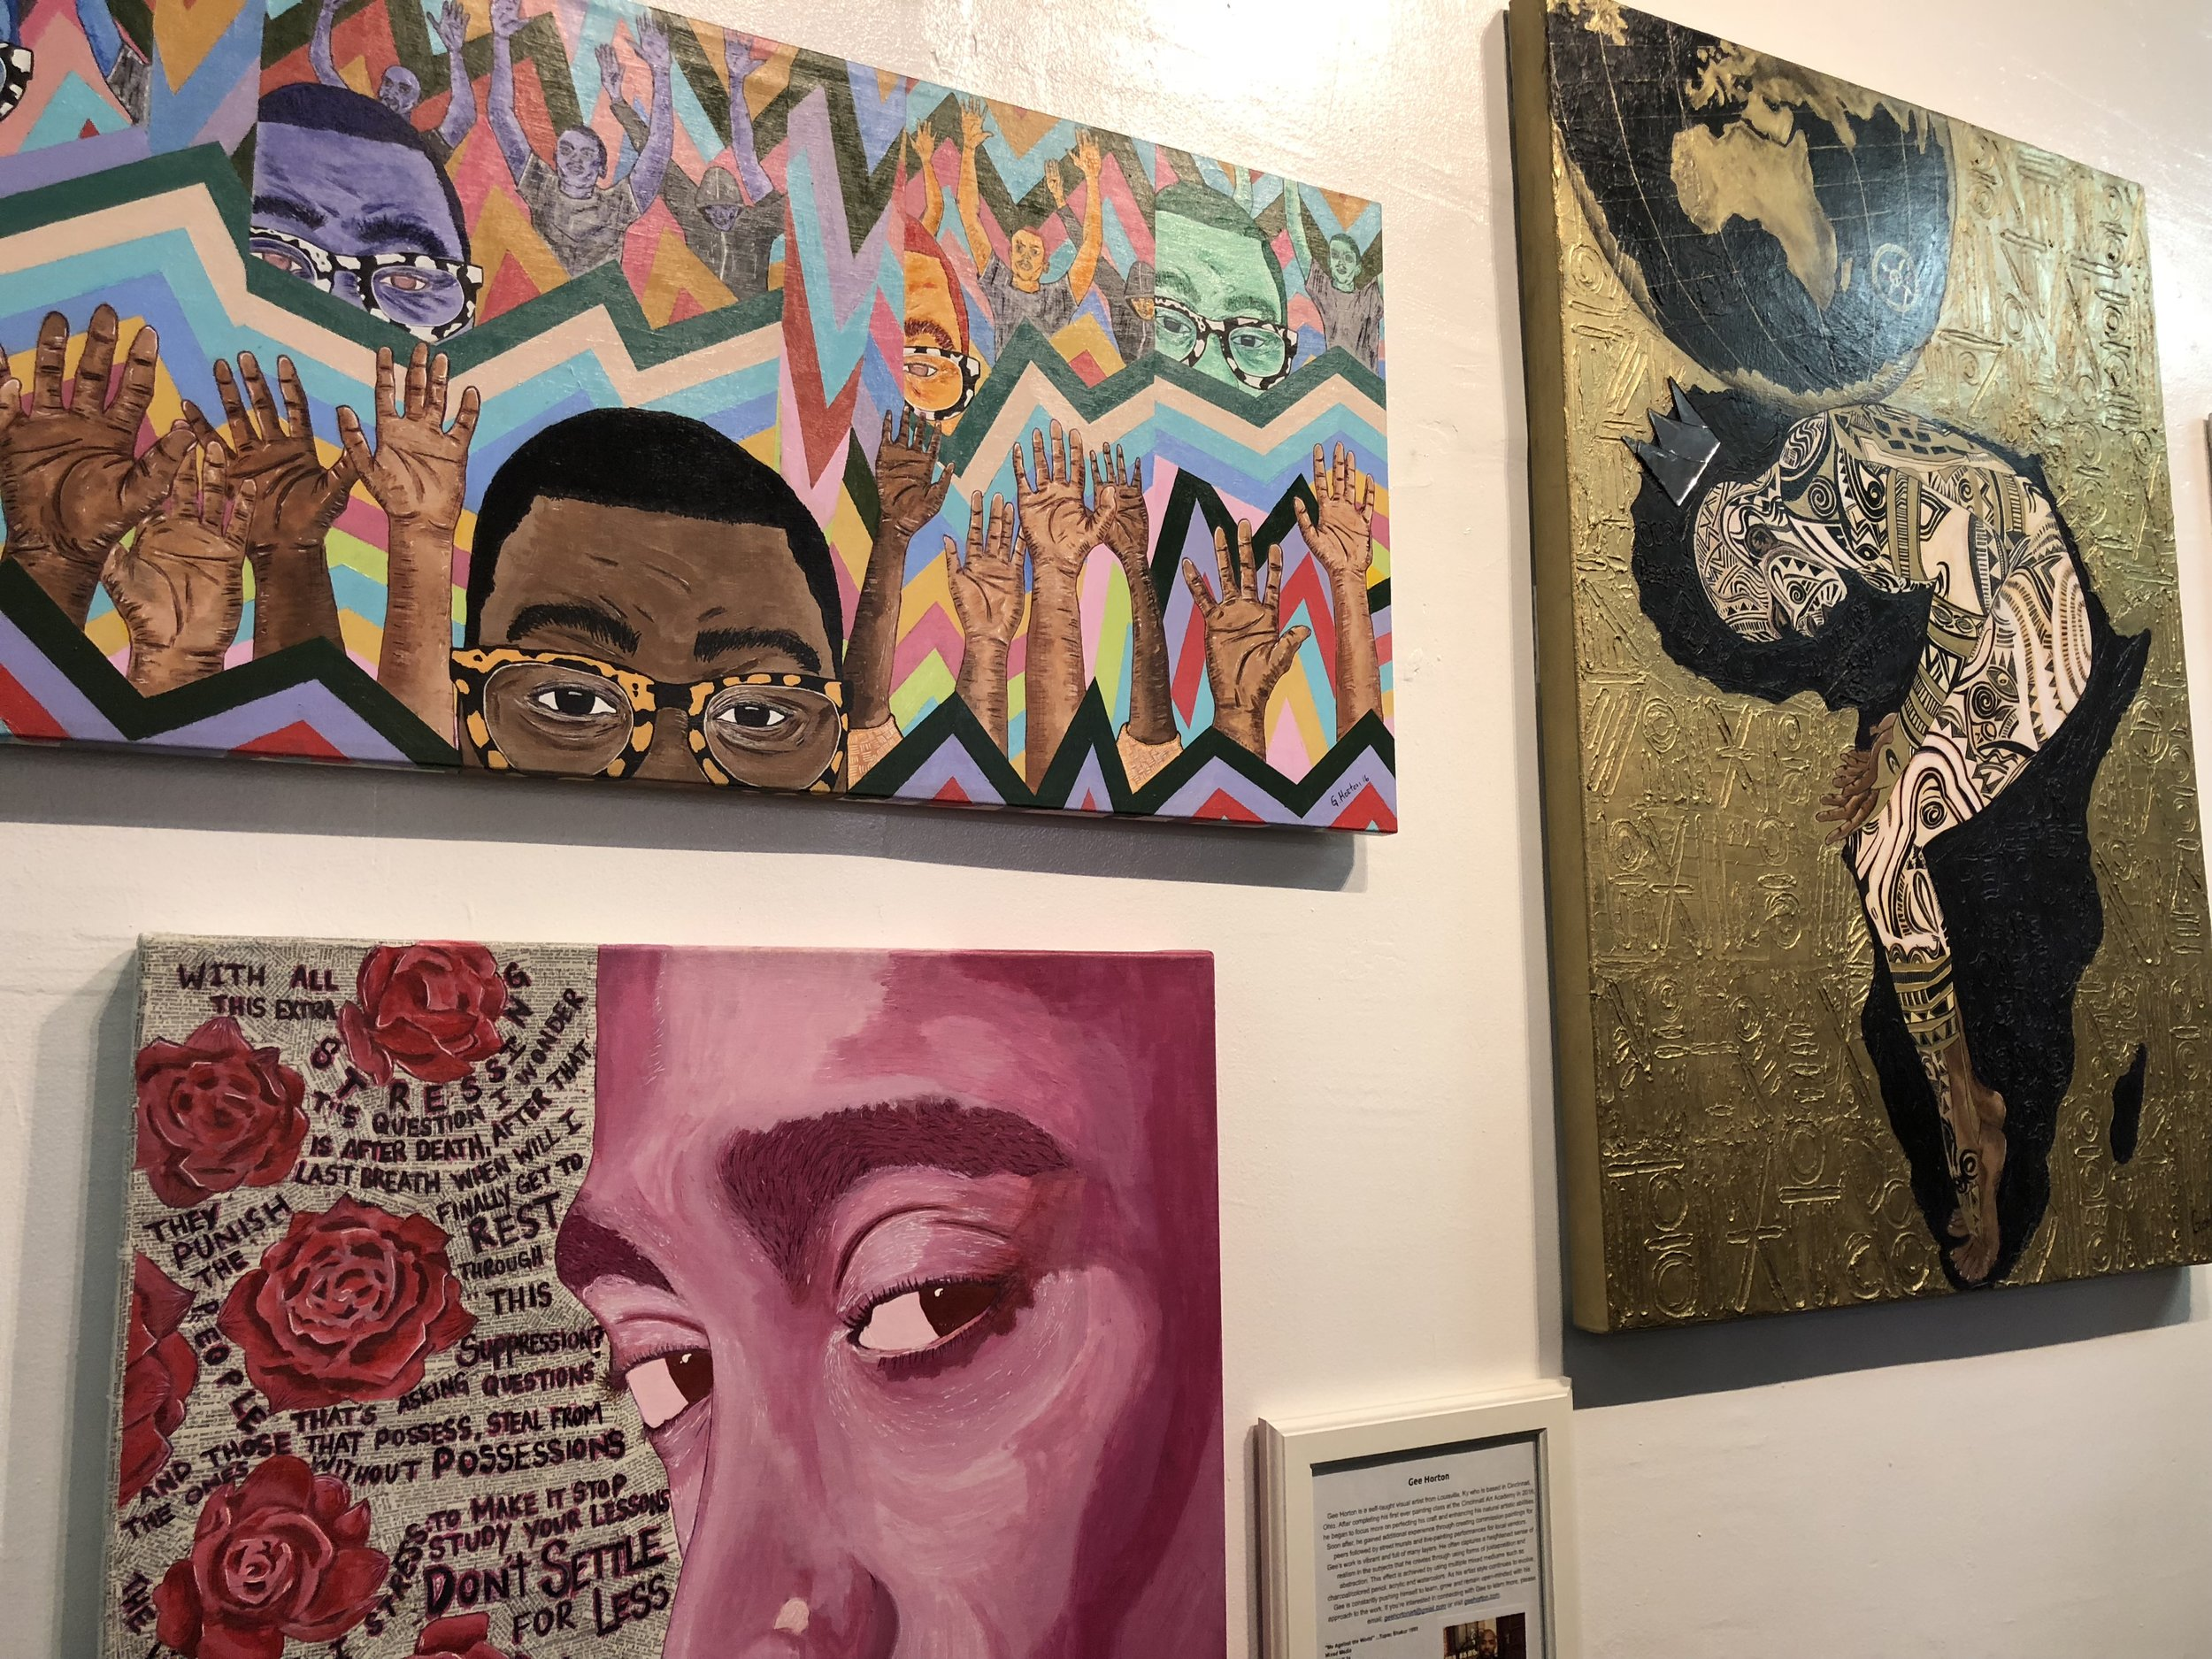 Paintings by Gee Horton at the West End Art Gallery, 2018. Image courtesy of Annabel Biernat.